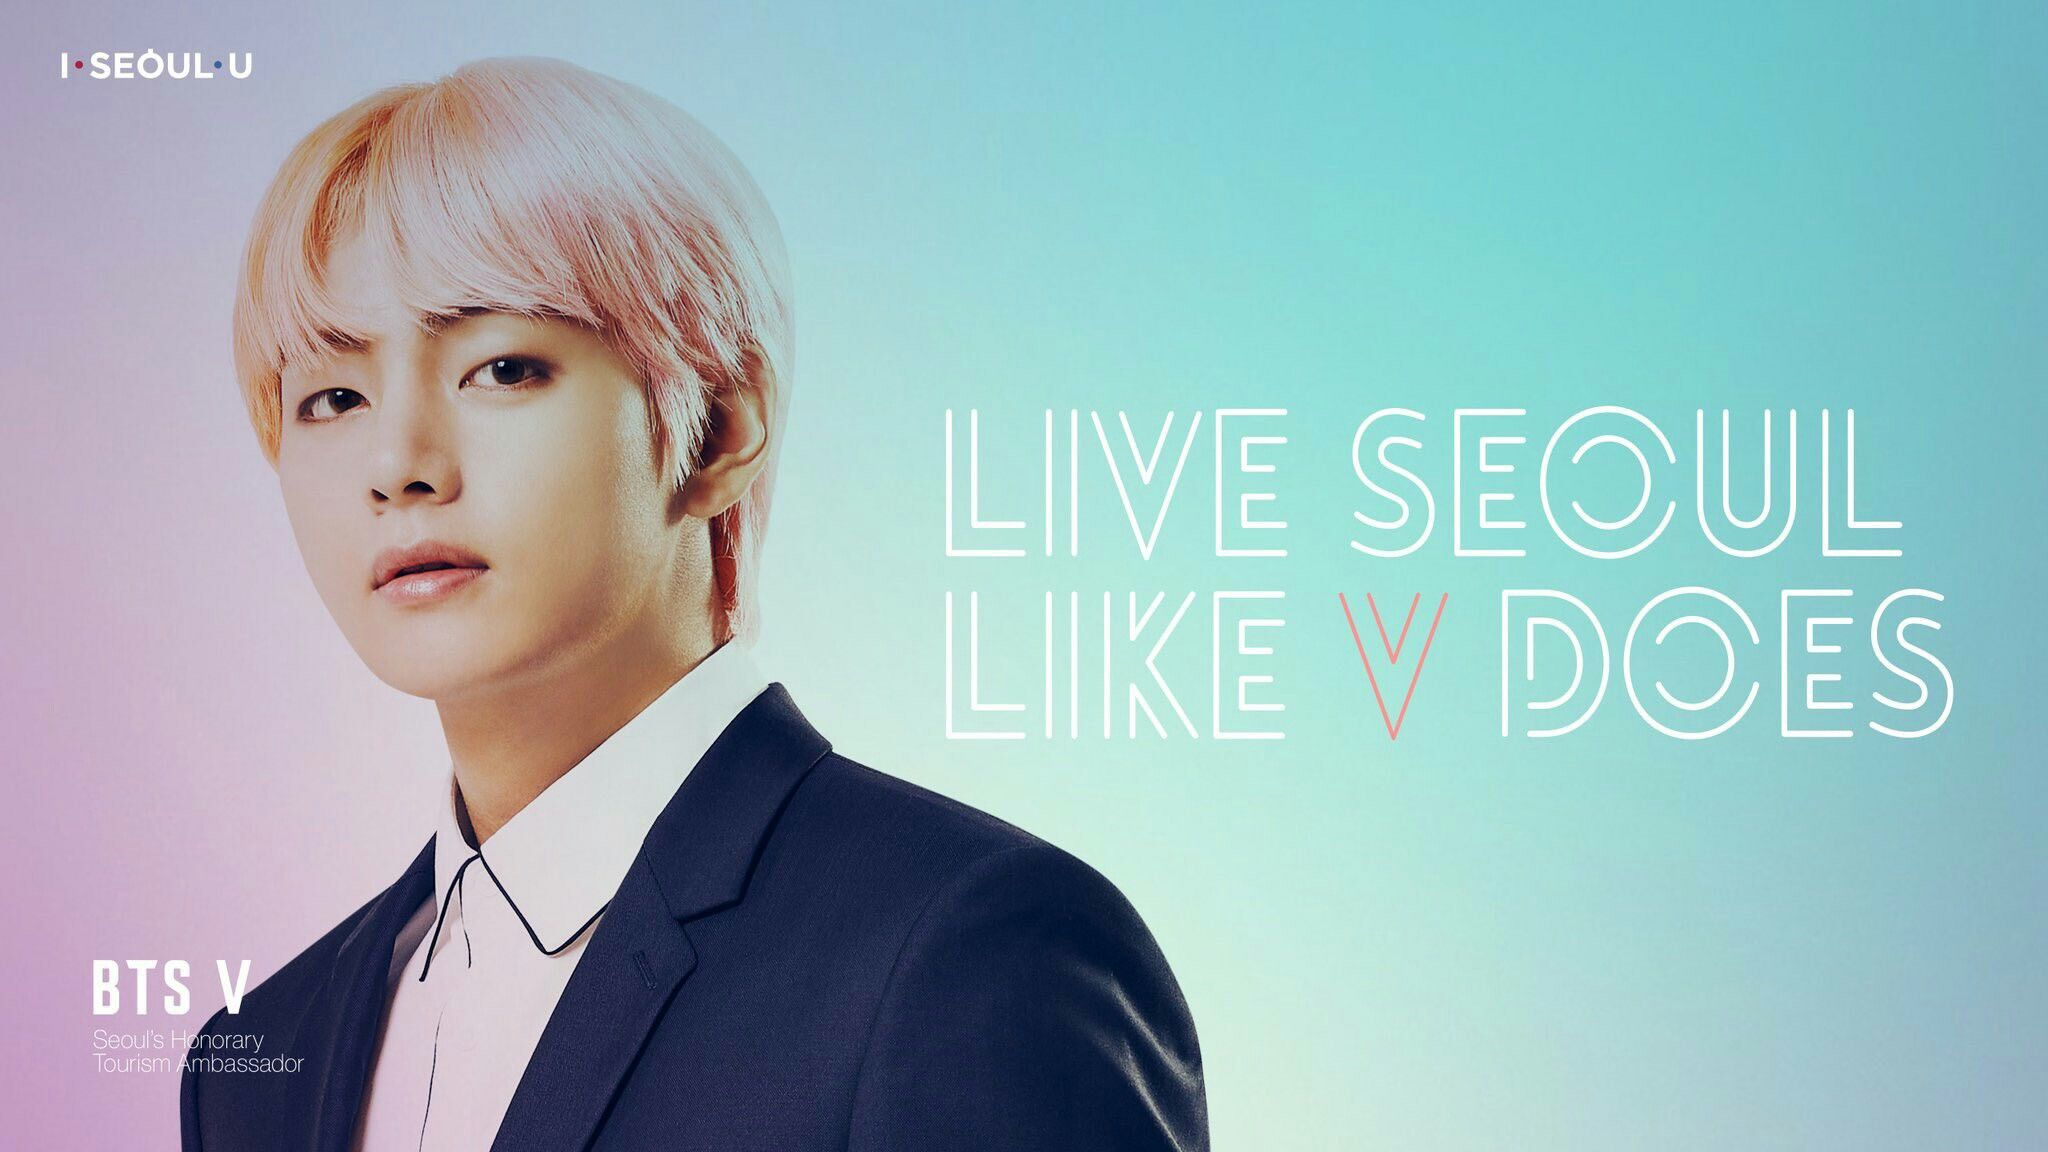 Pc Wallpaper Live Seoul Like I Do Liveseoullikebtsdoes Myseoulplaylist Tae Bts V Seoul Bts Taehyung